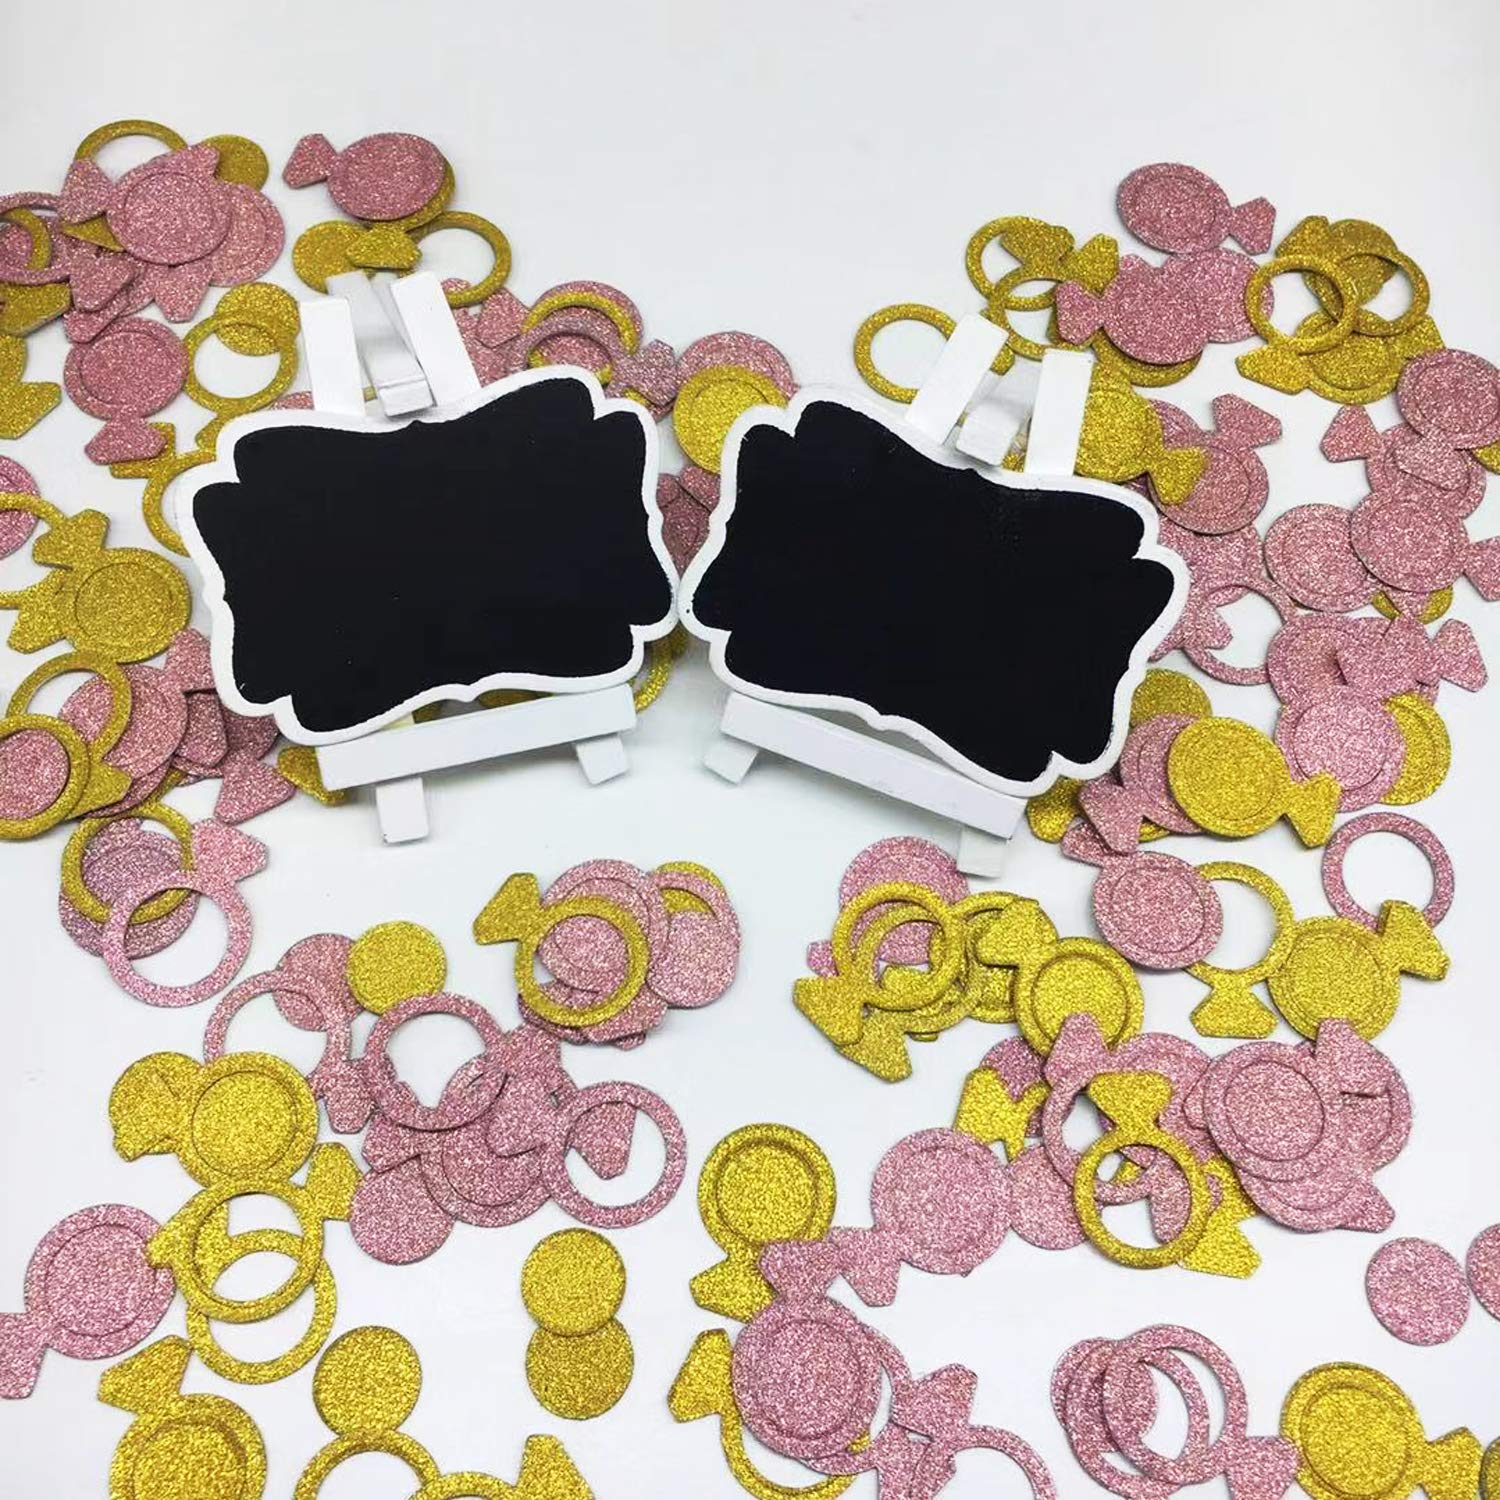 Rose Gold and Gold, Ring and Circle Rose Gold Ring Confetti Engagement Decorations Wedding Party Supplies Seasonsky 240 PCS Rose Gold and Gold Circle Ring Bachelorette Confetti for Baby Shower